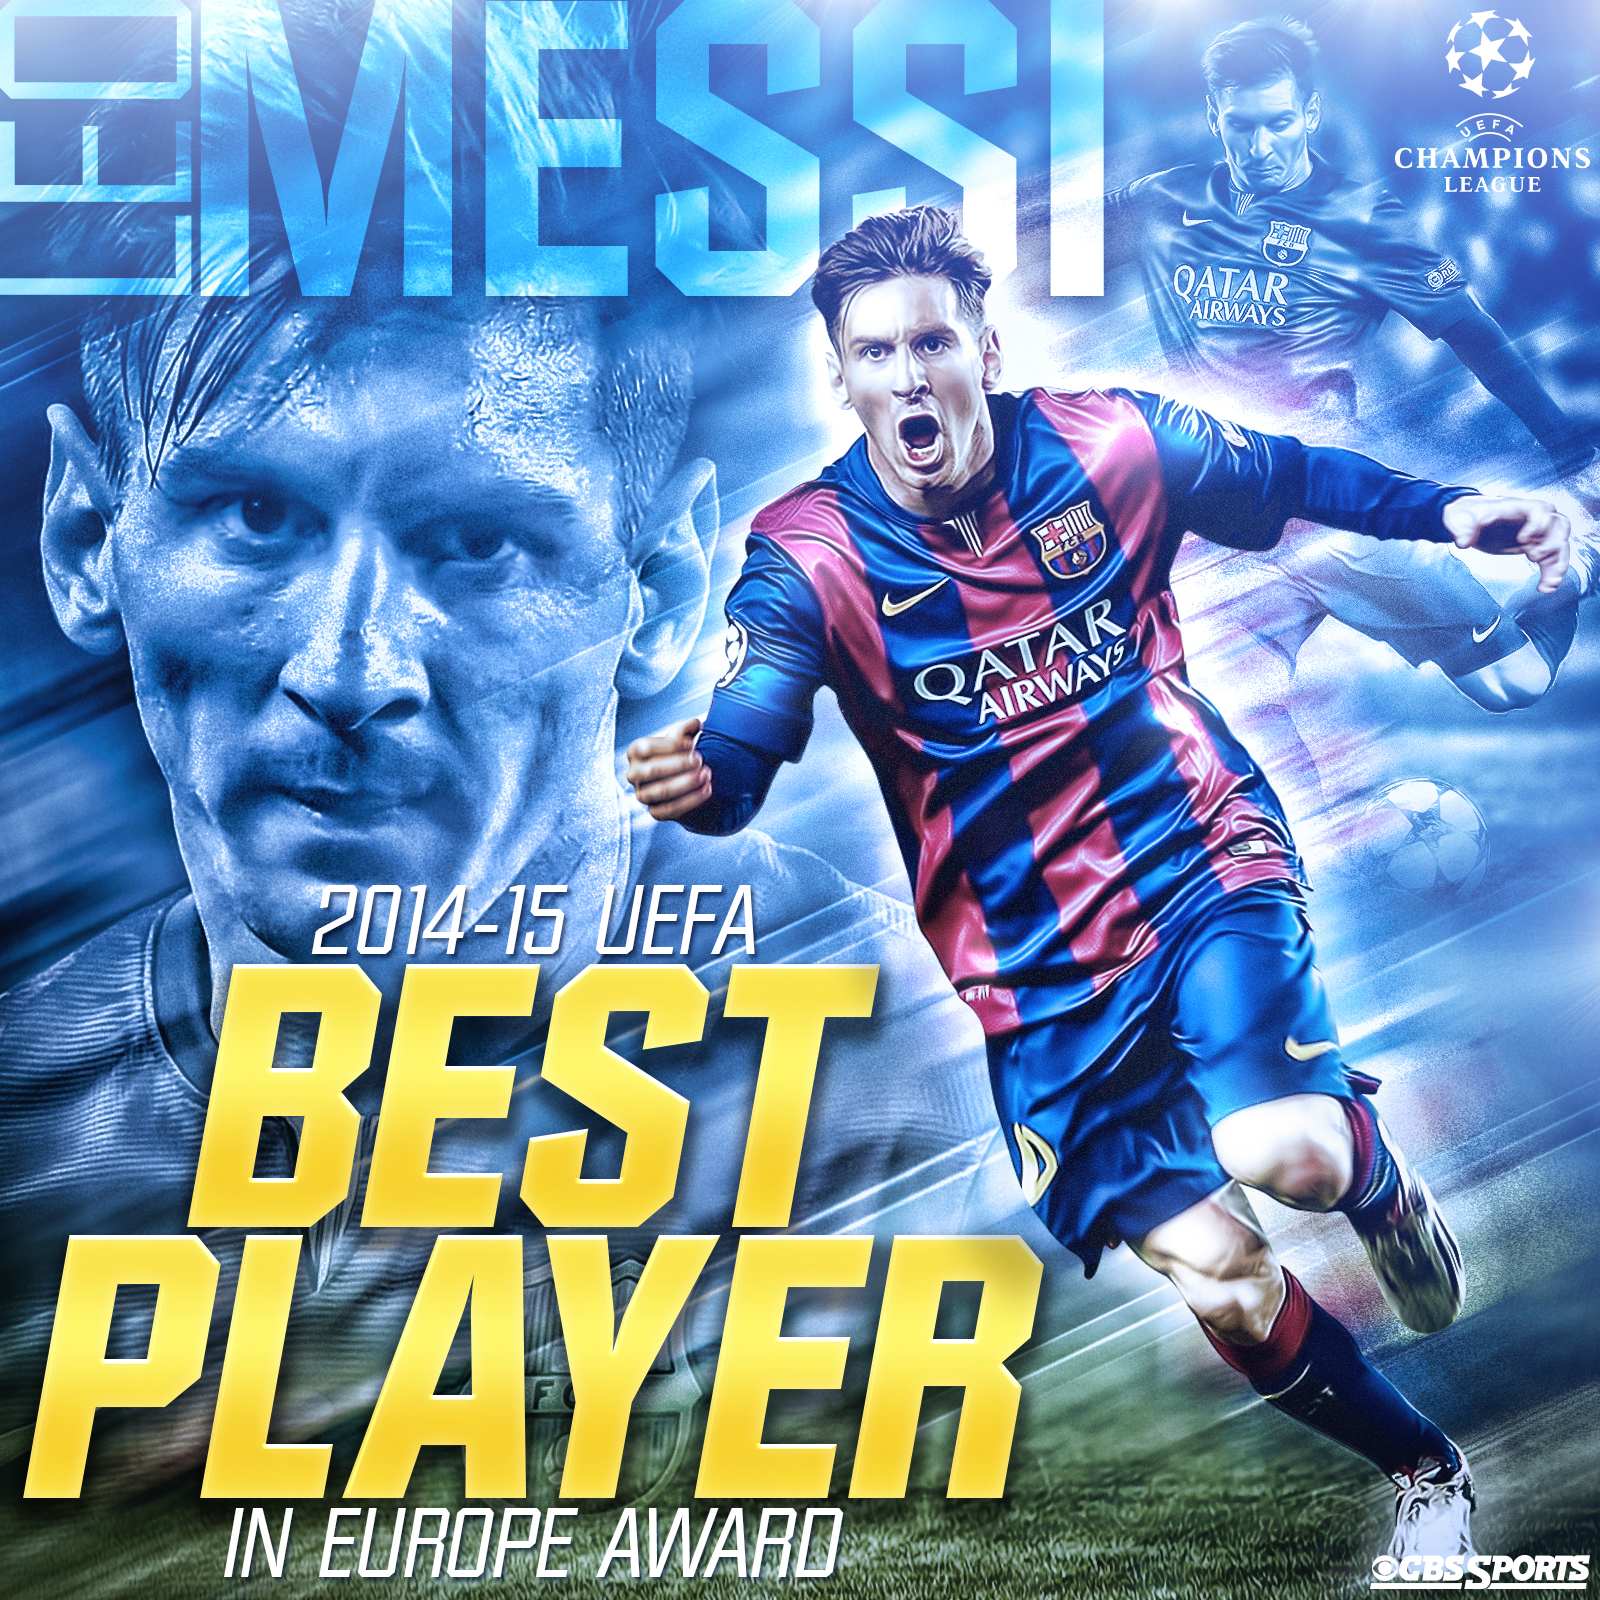 Messi Beats Ronaldo For 2014 15 Uefa Best Player In Europe